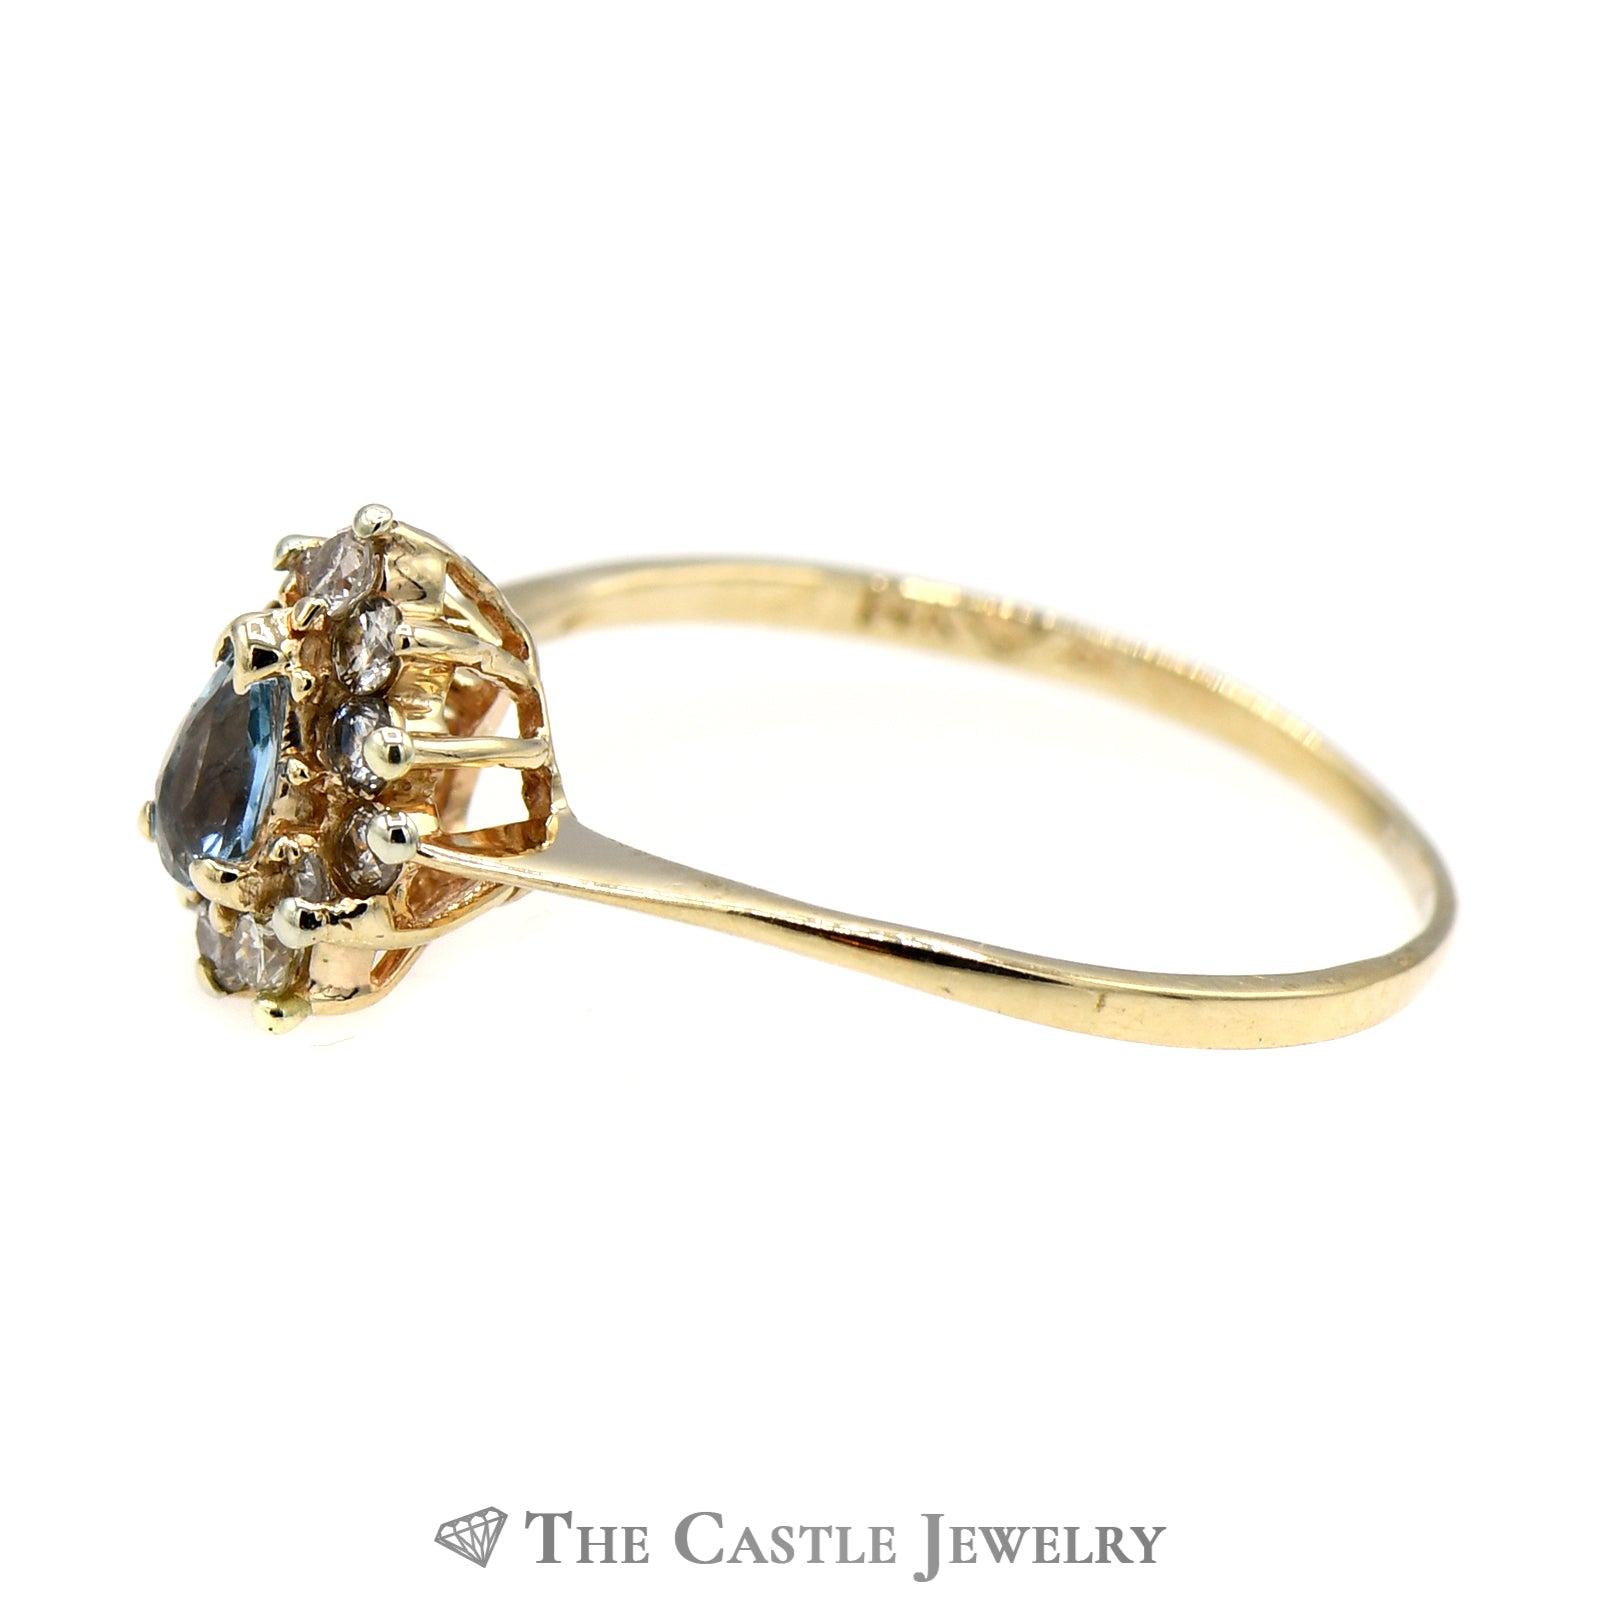 Petite Pear Shaped Topaz Ring with Diamond Halo-2